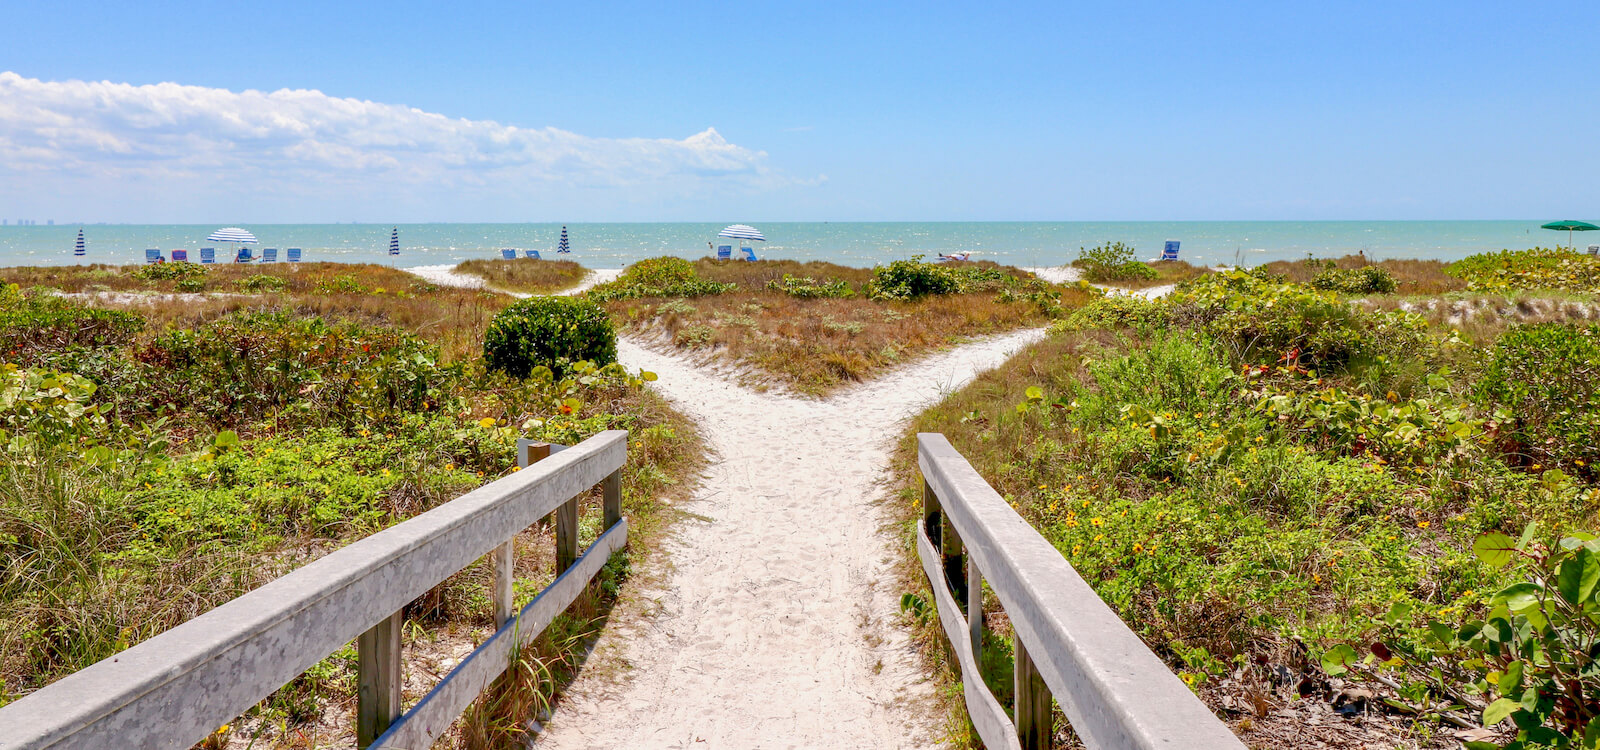 Pathway to the Gulf of Mexico and white sand beach on Sanibel Island, Florida with plenty of room to play, relax, or gather shells. Photo by Nita Ettinger. Must Do Visitor Guides | MustDo.com